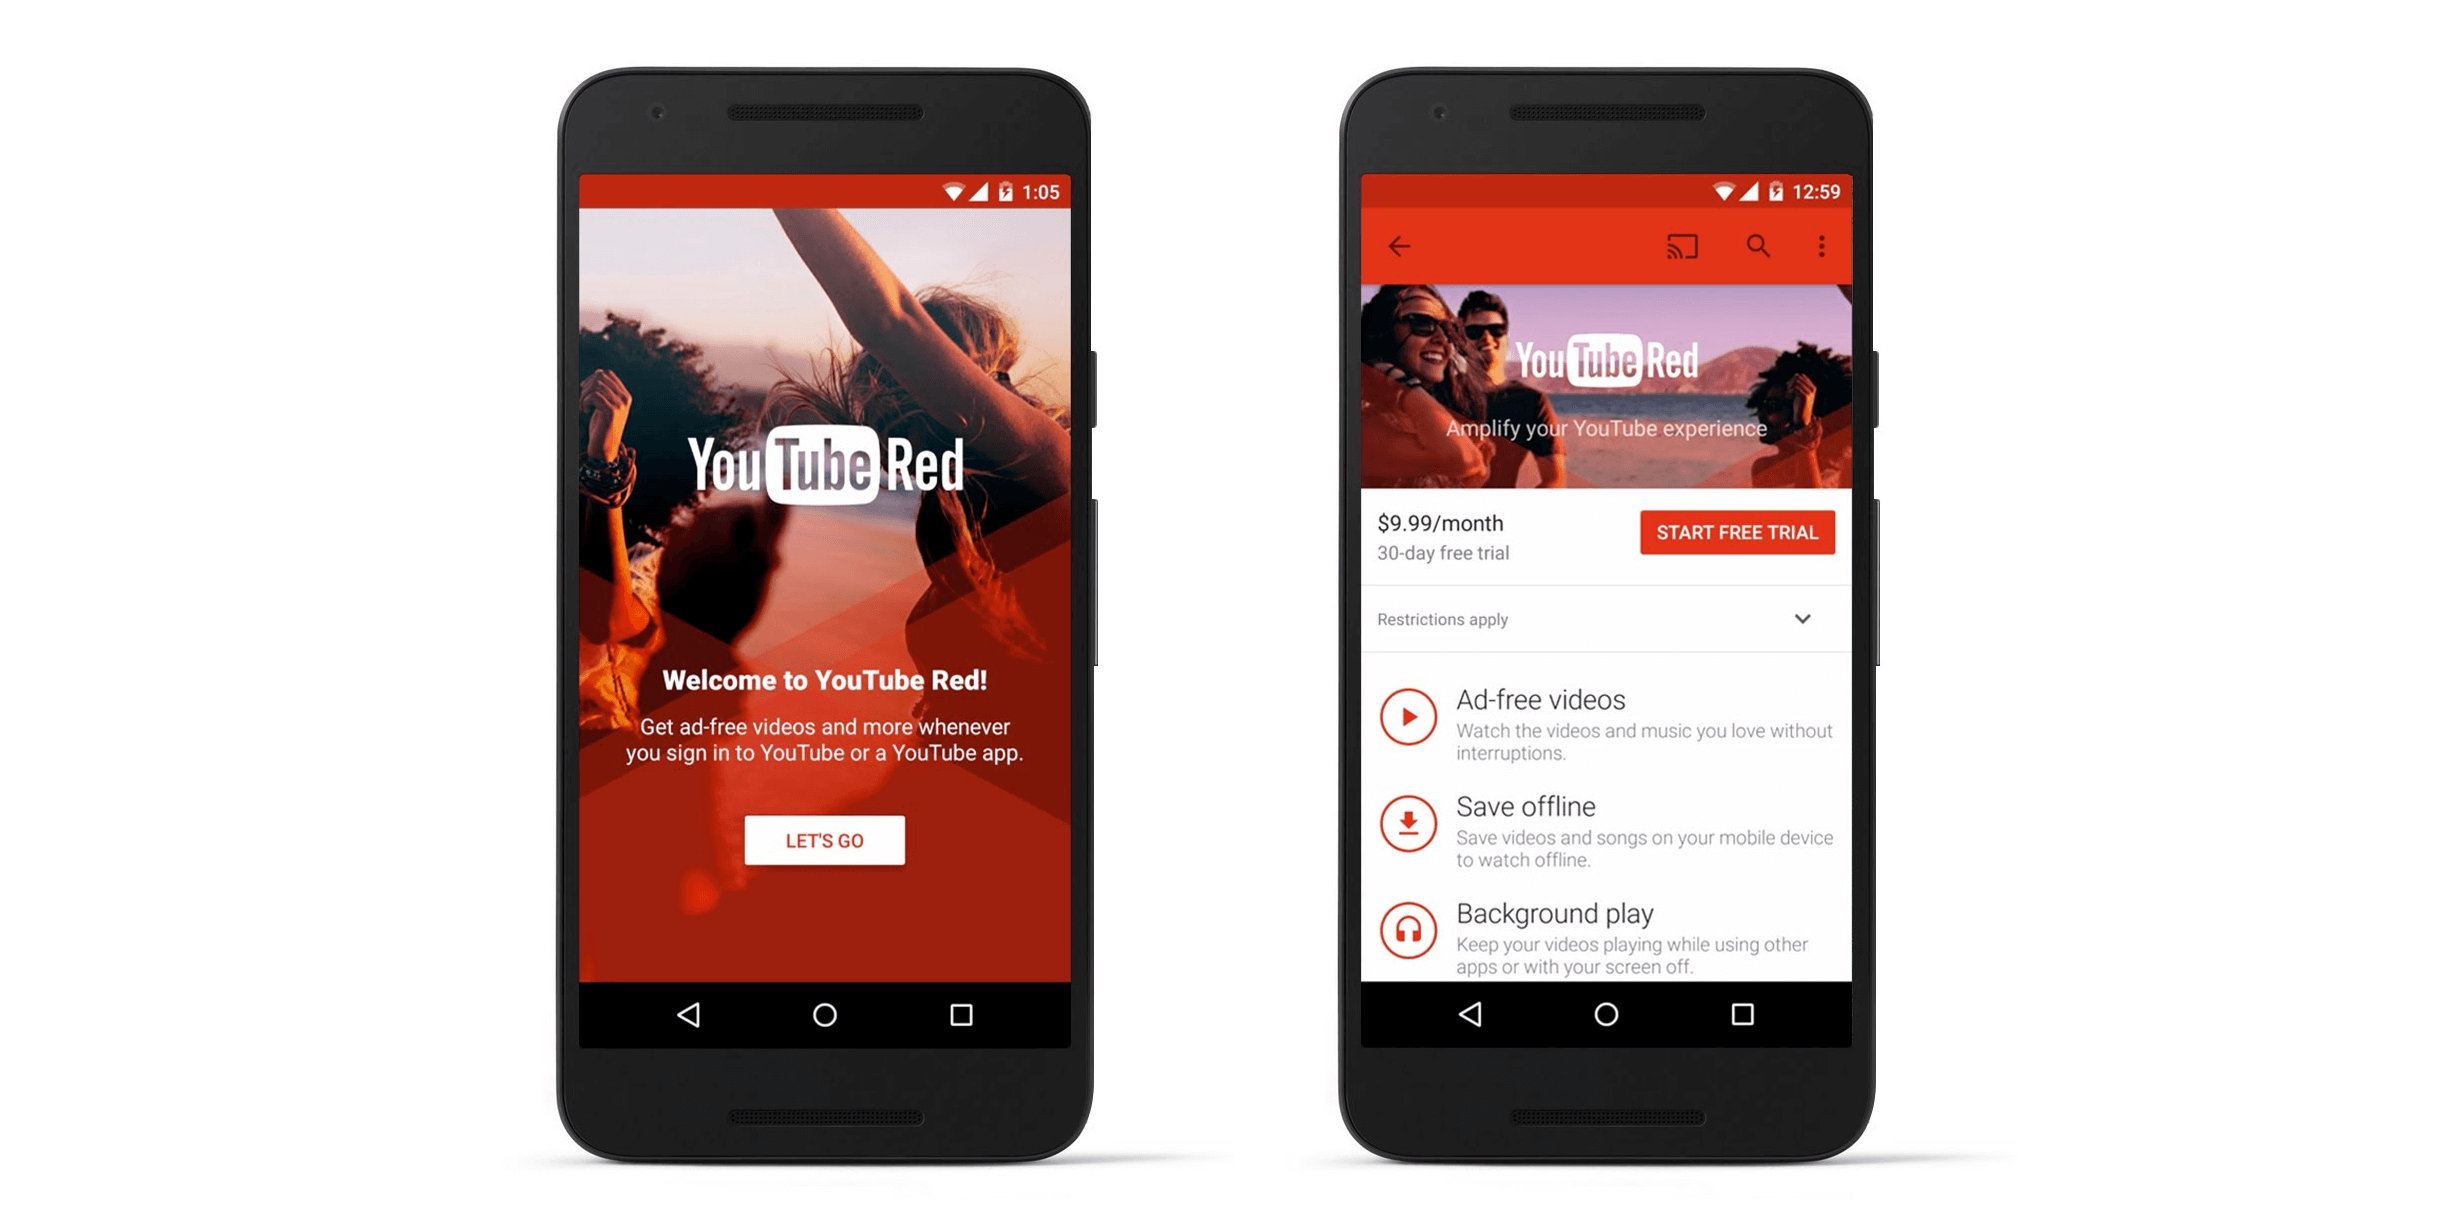 Google Is Breaking Up YouTube Red Into 2 New Subscription Services For Music and Video